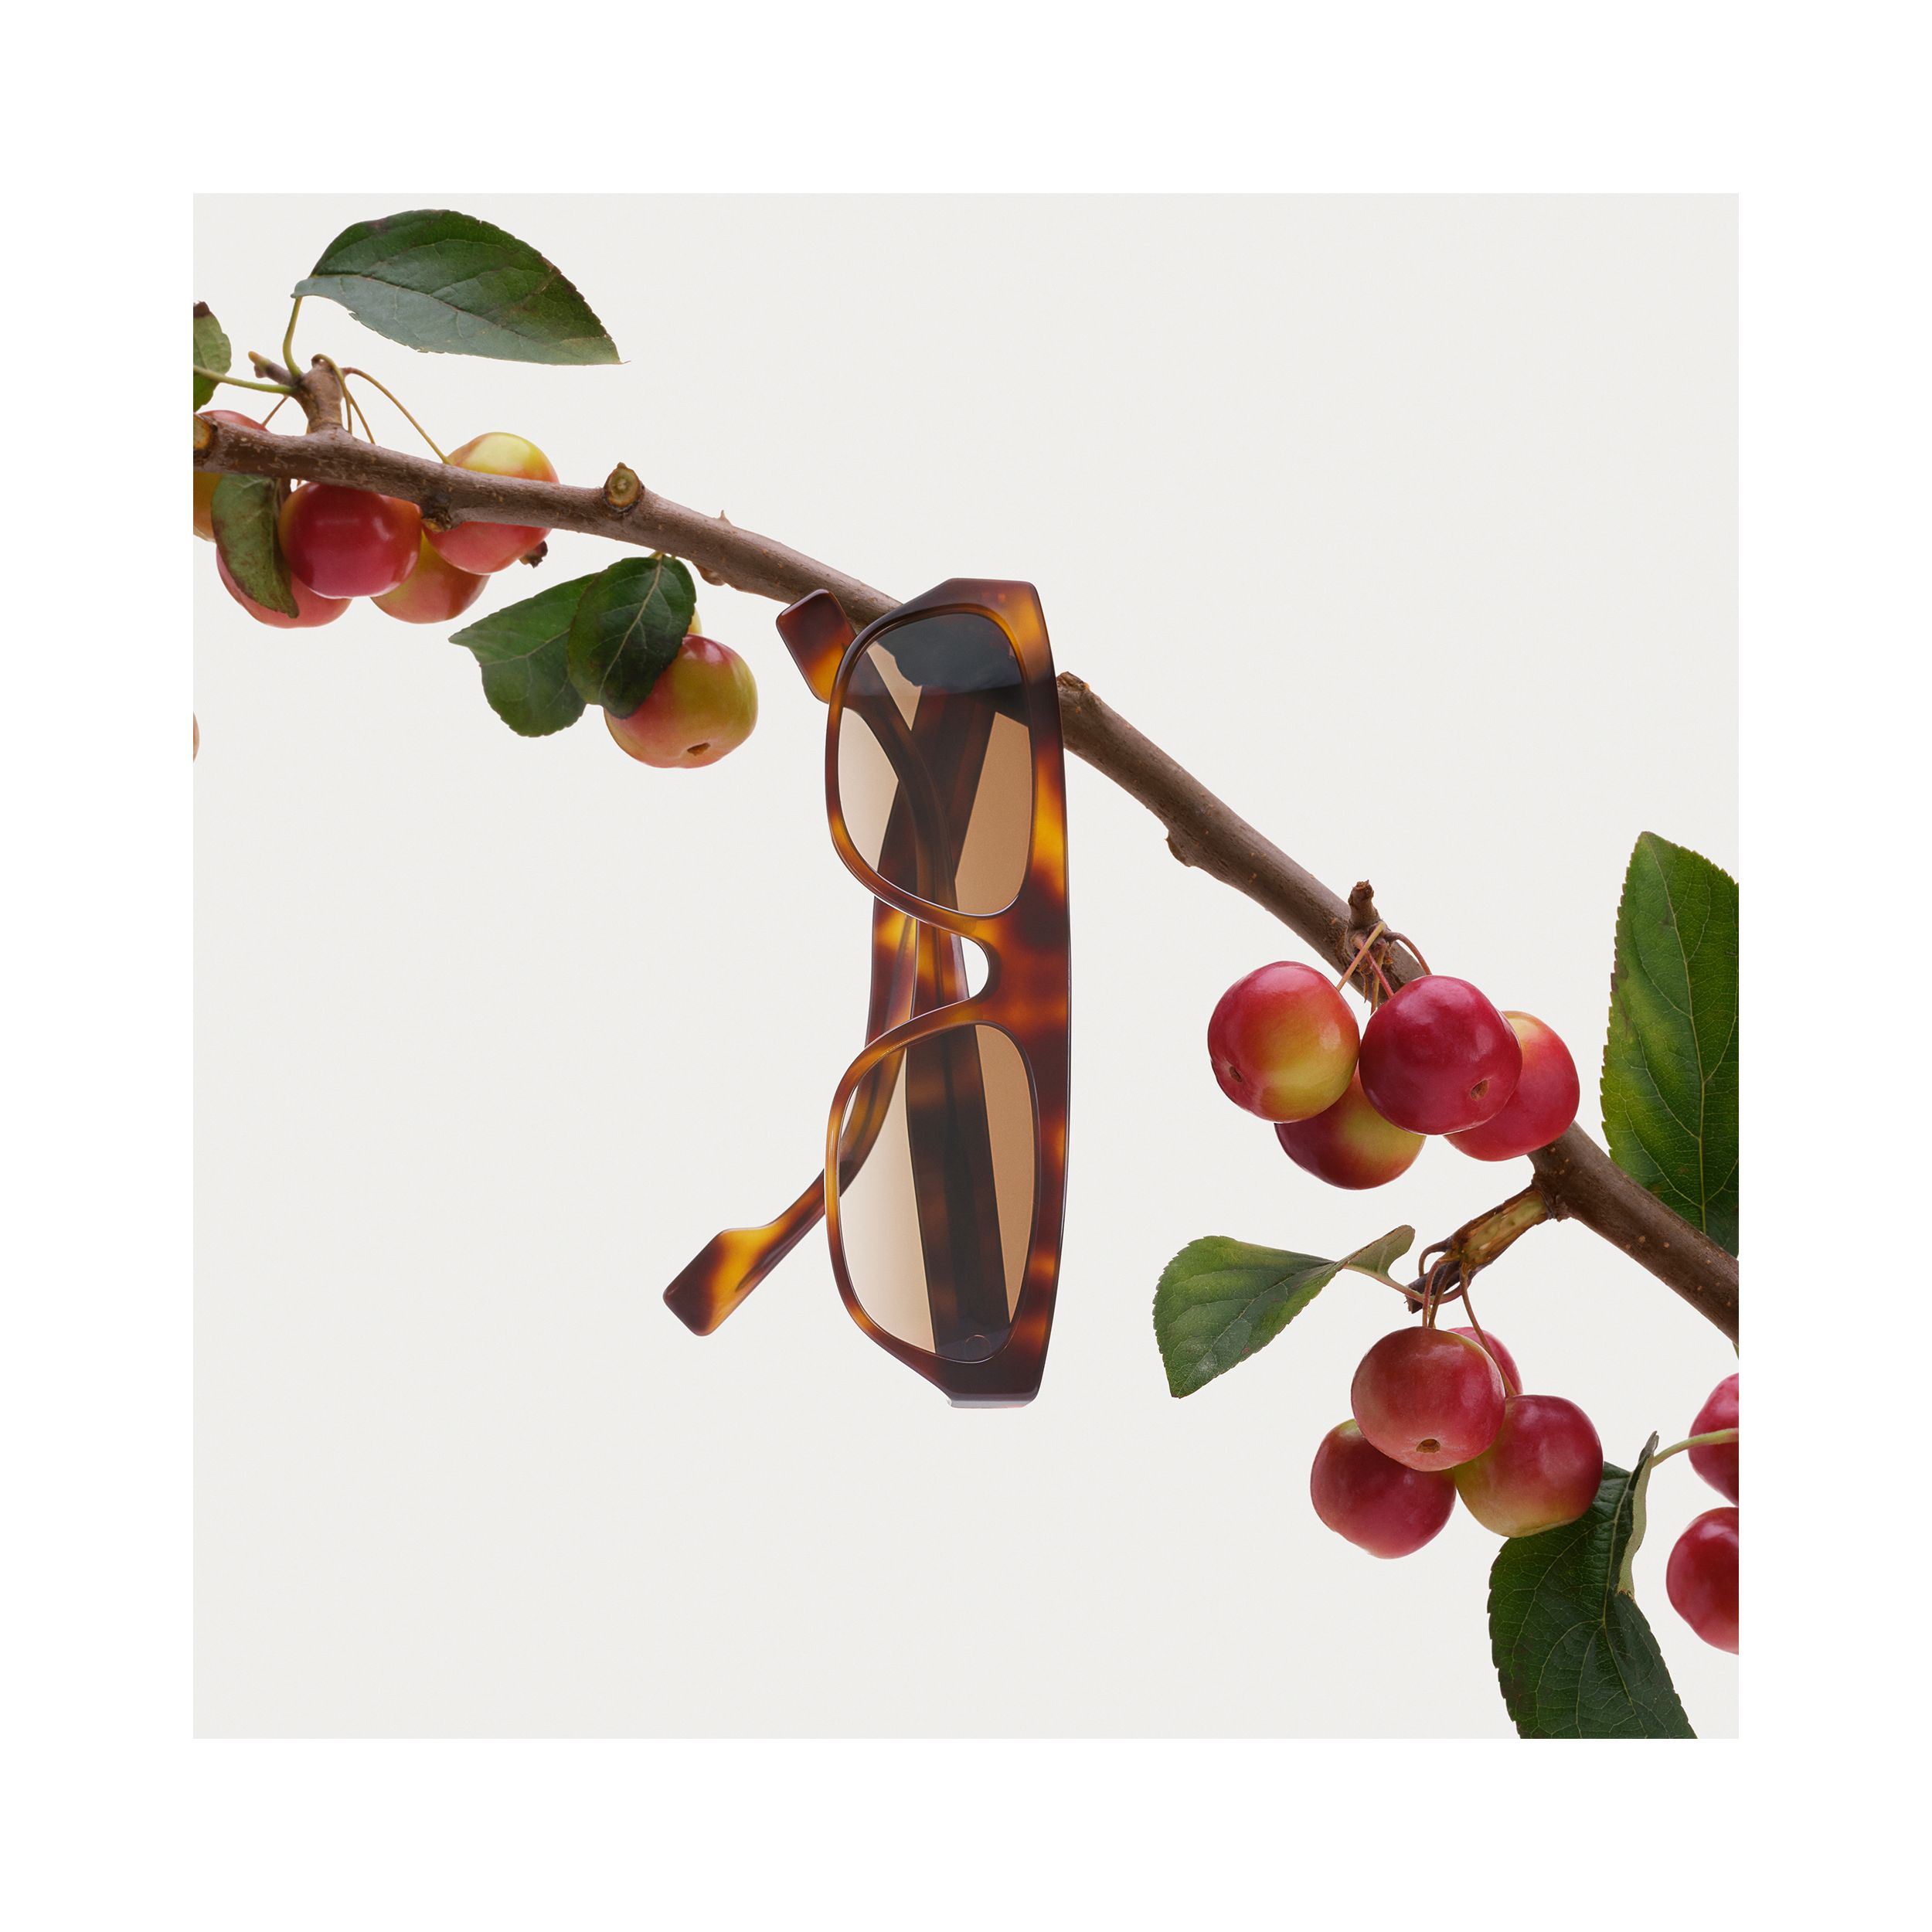 Monogram Motif Rectangular Frame Sunglasses in Amber Tortoiseshell | Burberry - 2